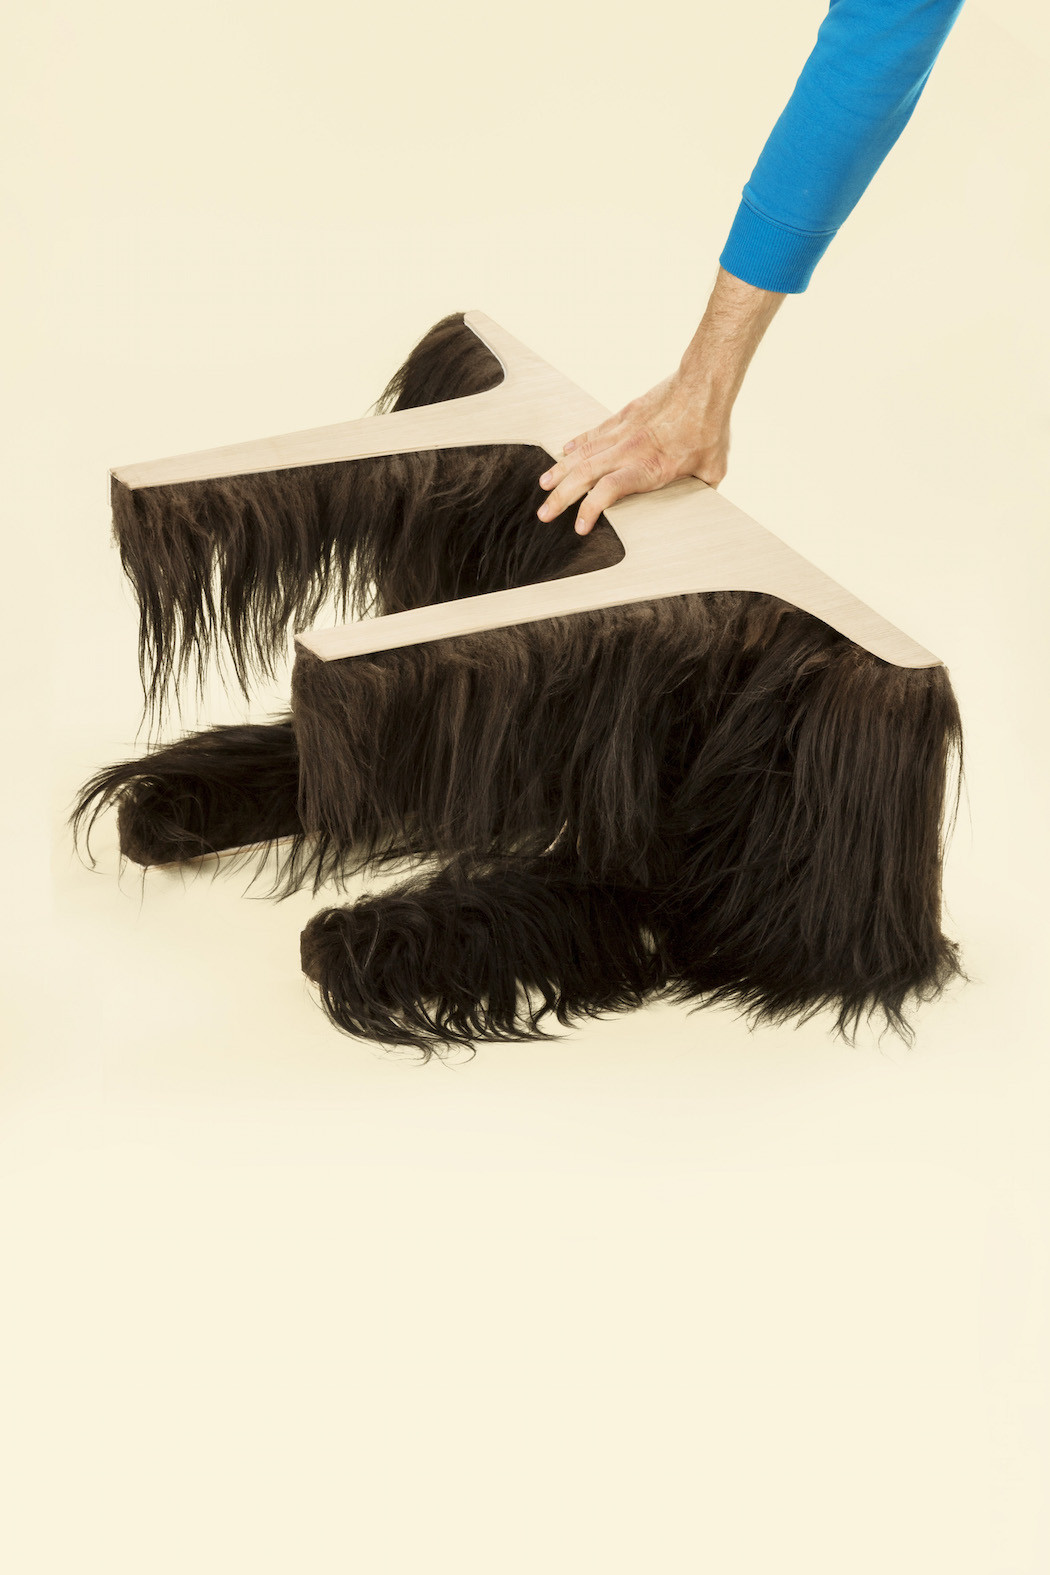 fifty fifty, fur table, karolina fardova